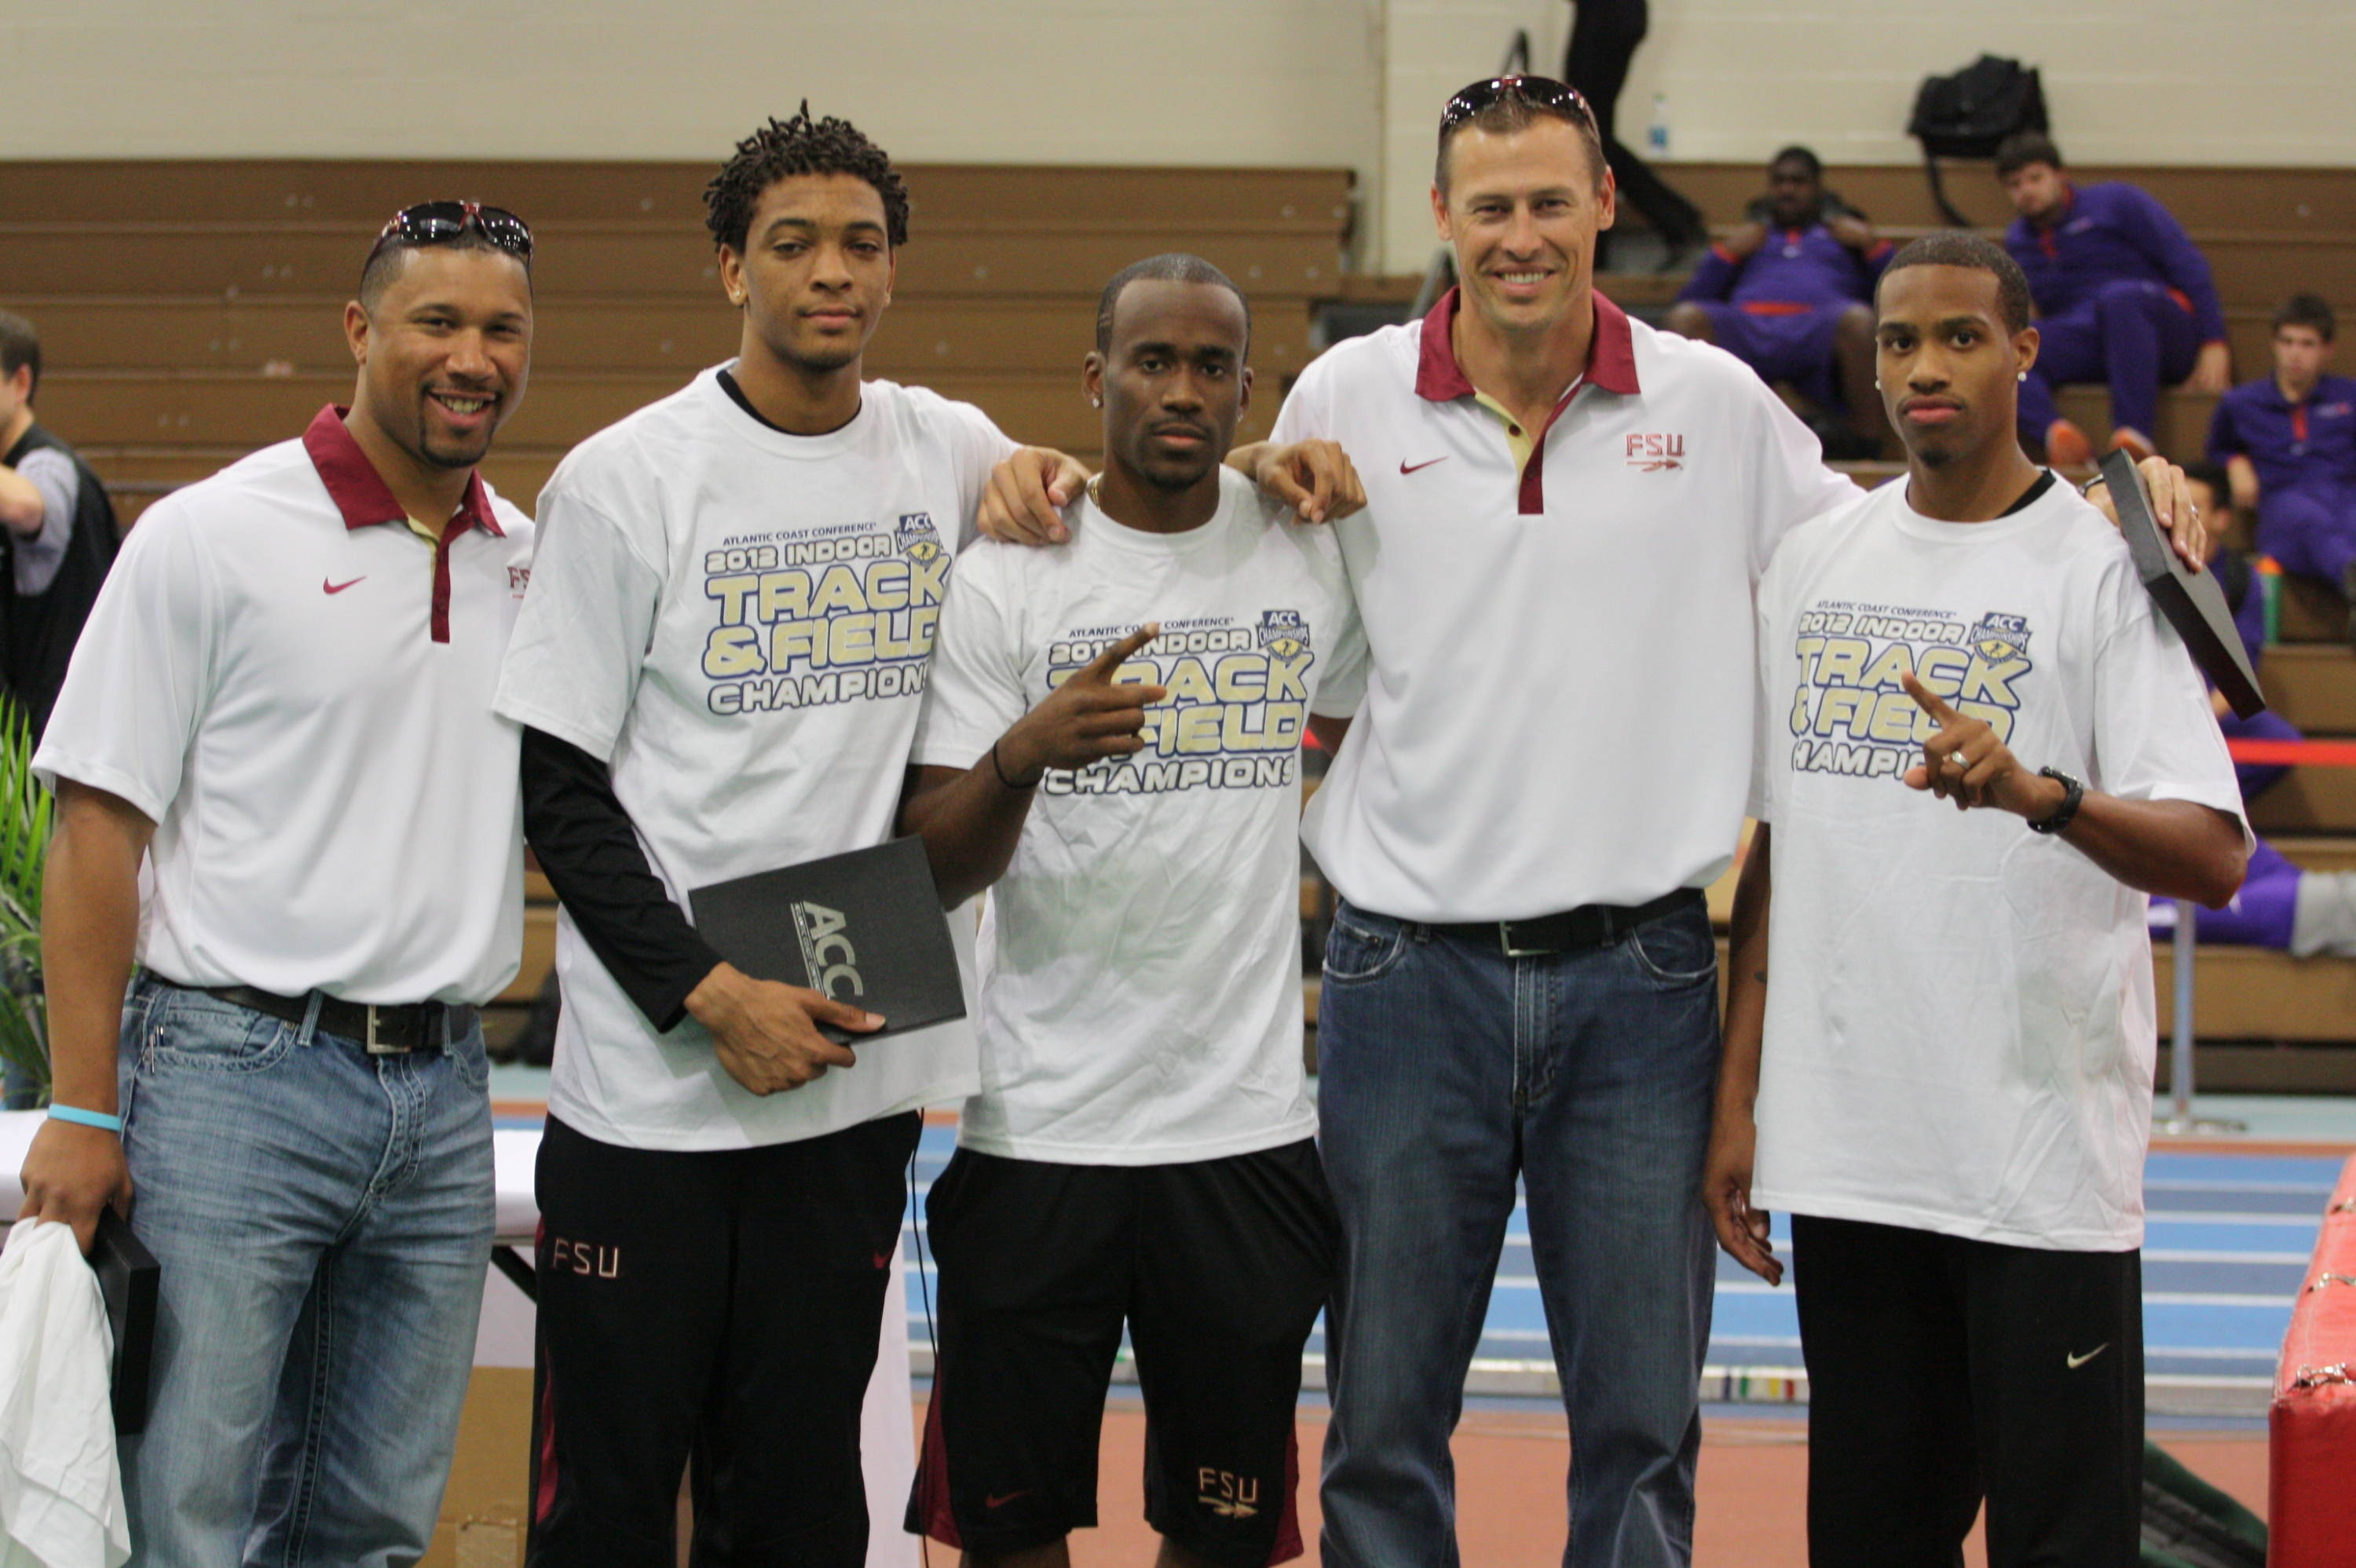 FSU's sprint posse of Stephen Newbold, Kemar Hyman and Maurice Mitchell swept the three ACC sprint titles. They are joined by assistant Devin West (left) and director of sprints, hurdles and relays Ken Harnden (second from right).